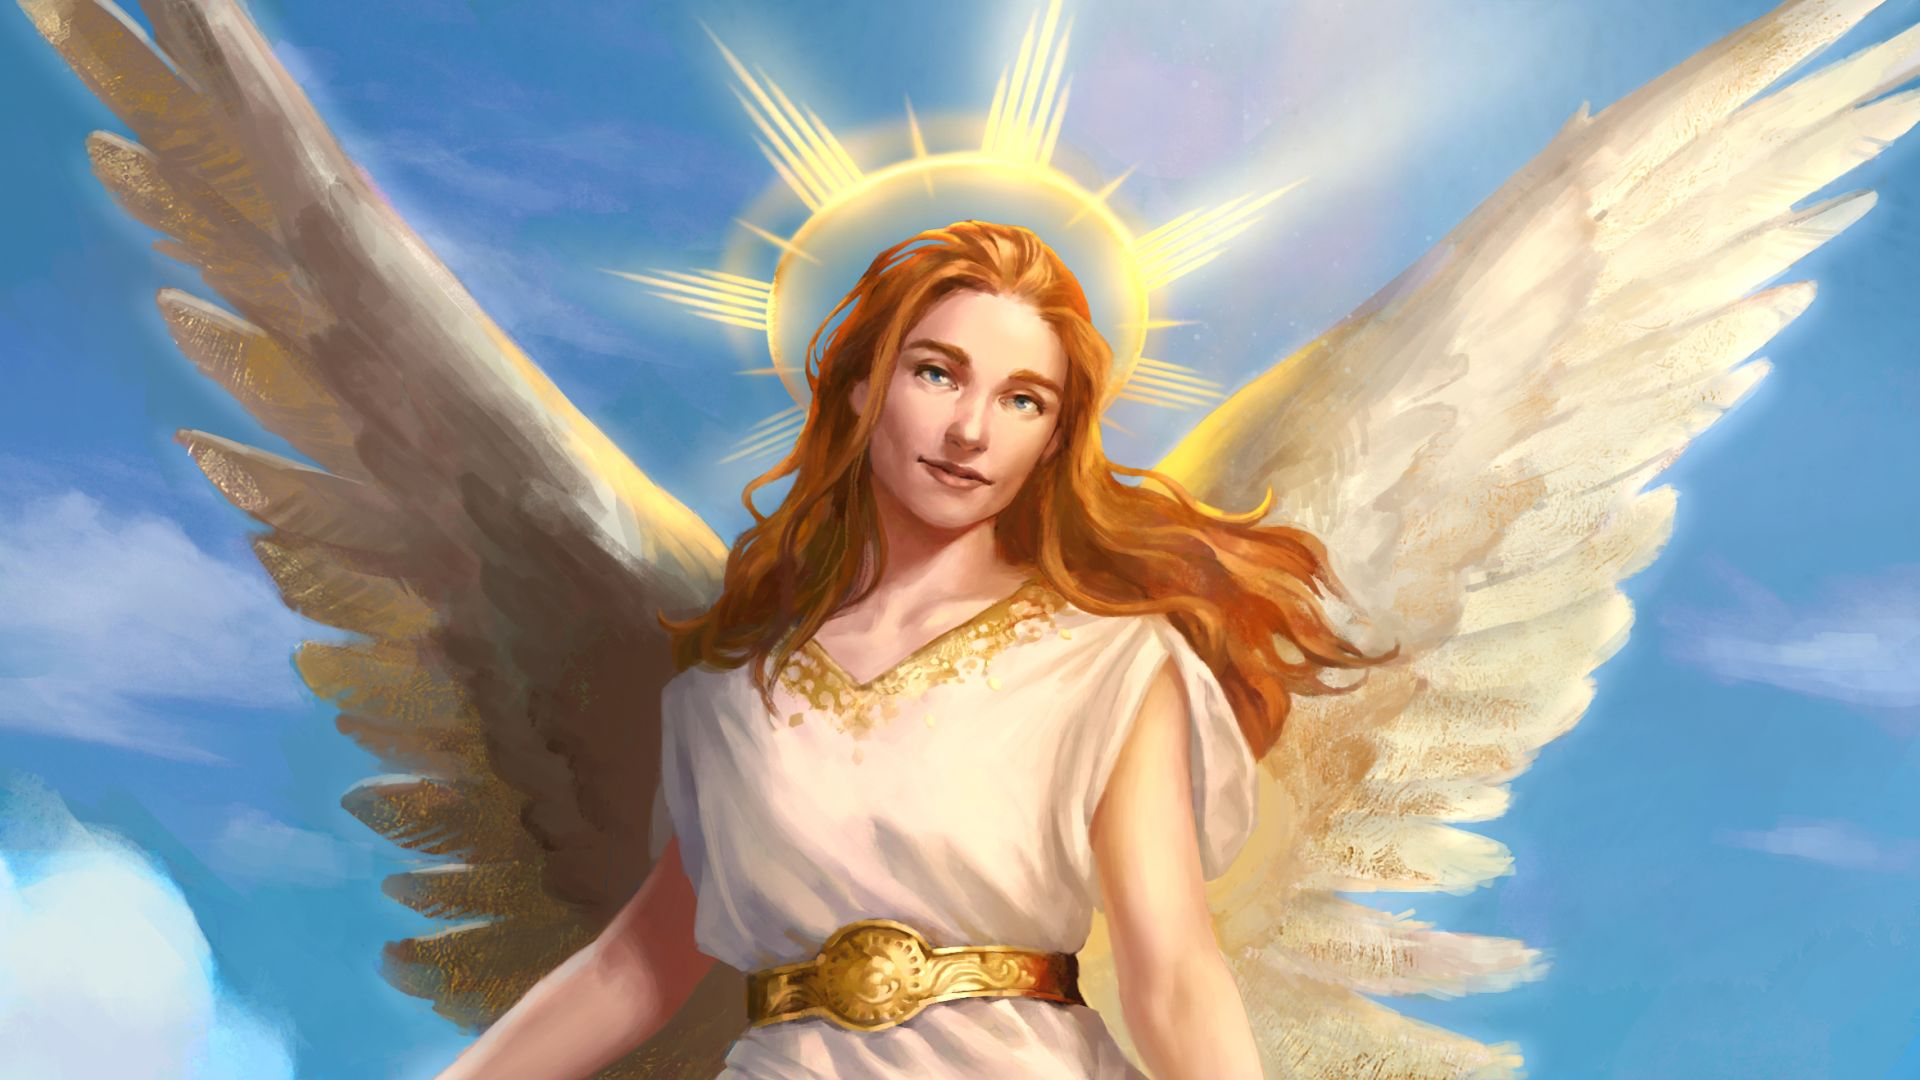 A winged angel with glowing halo